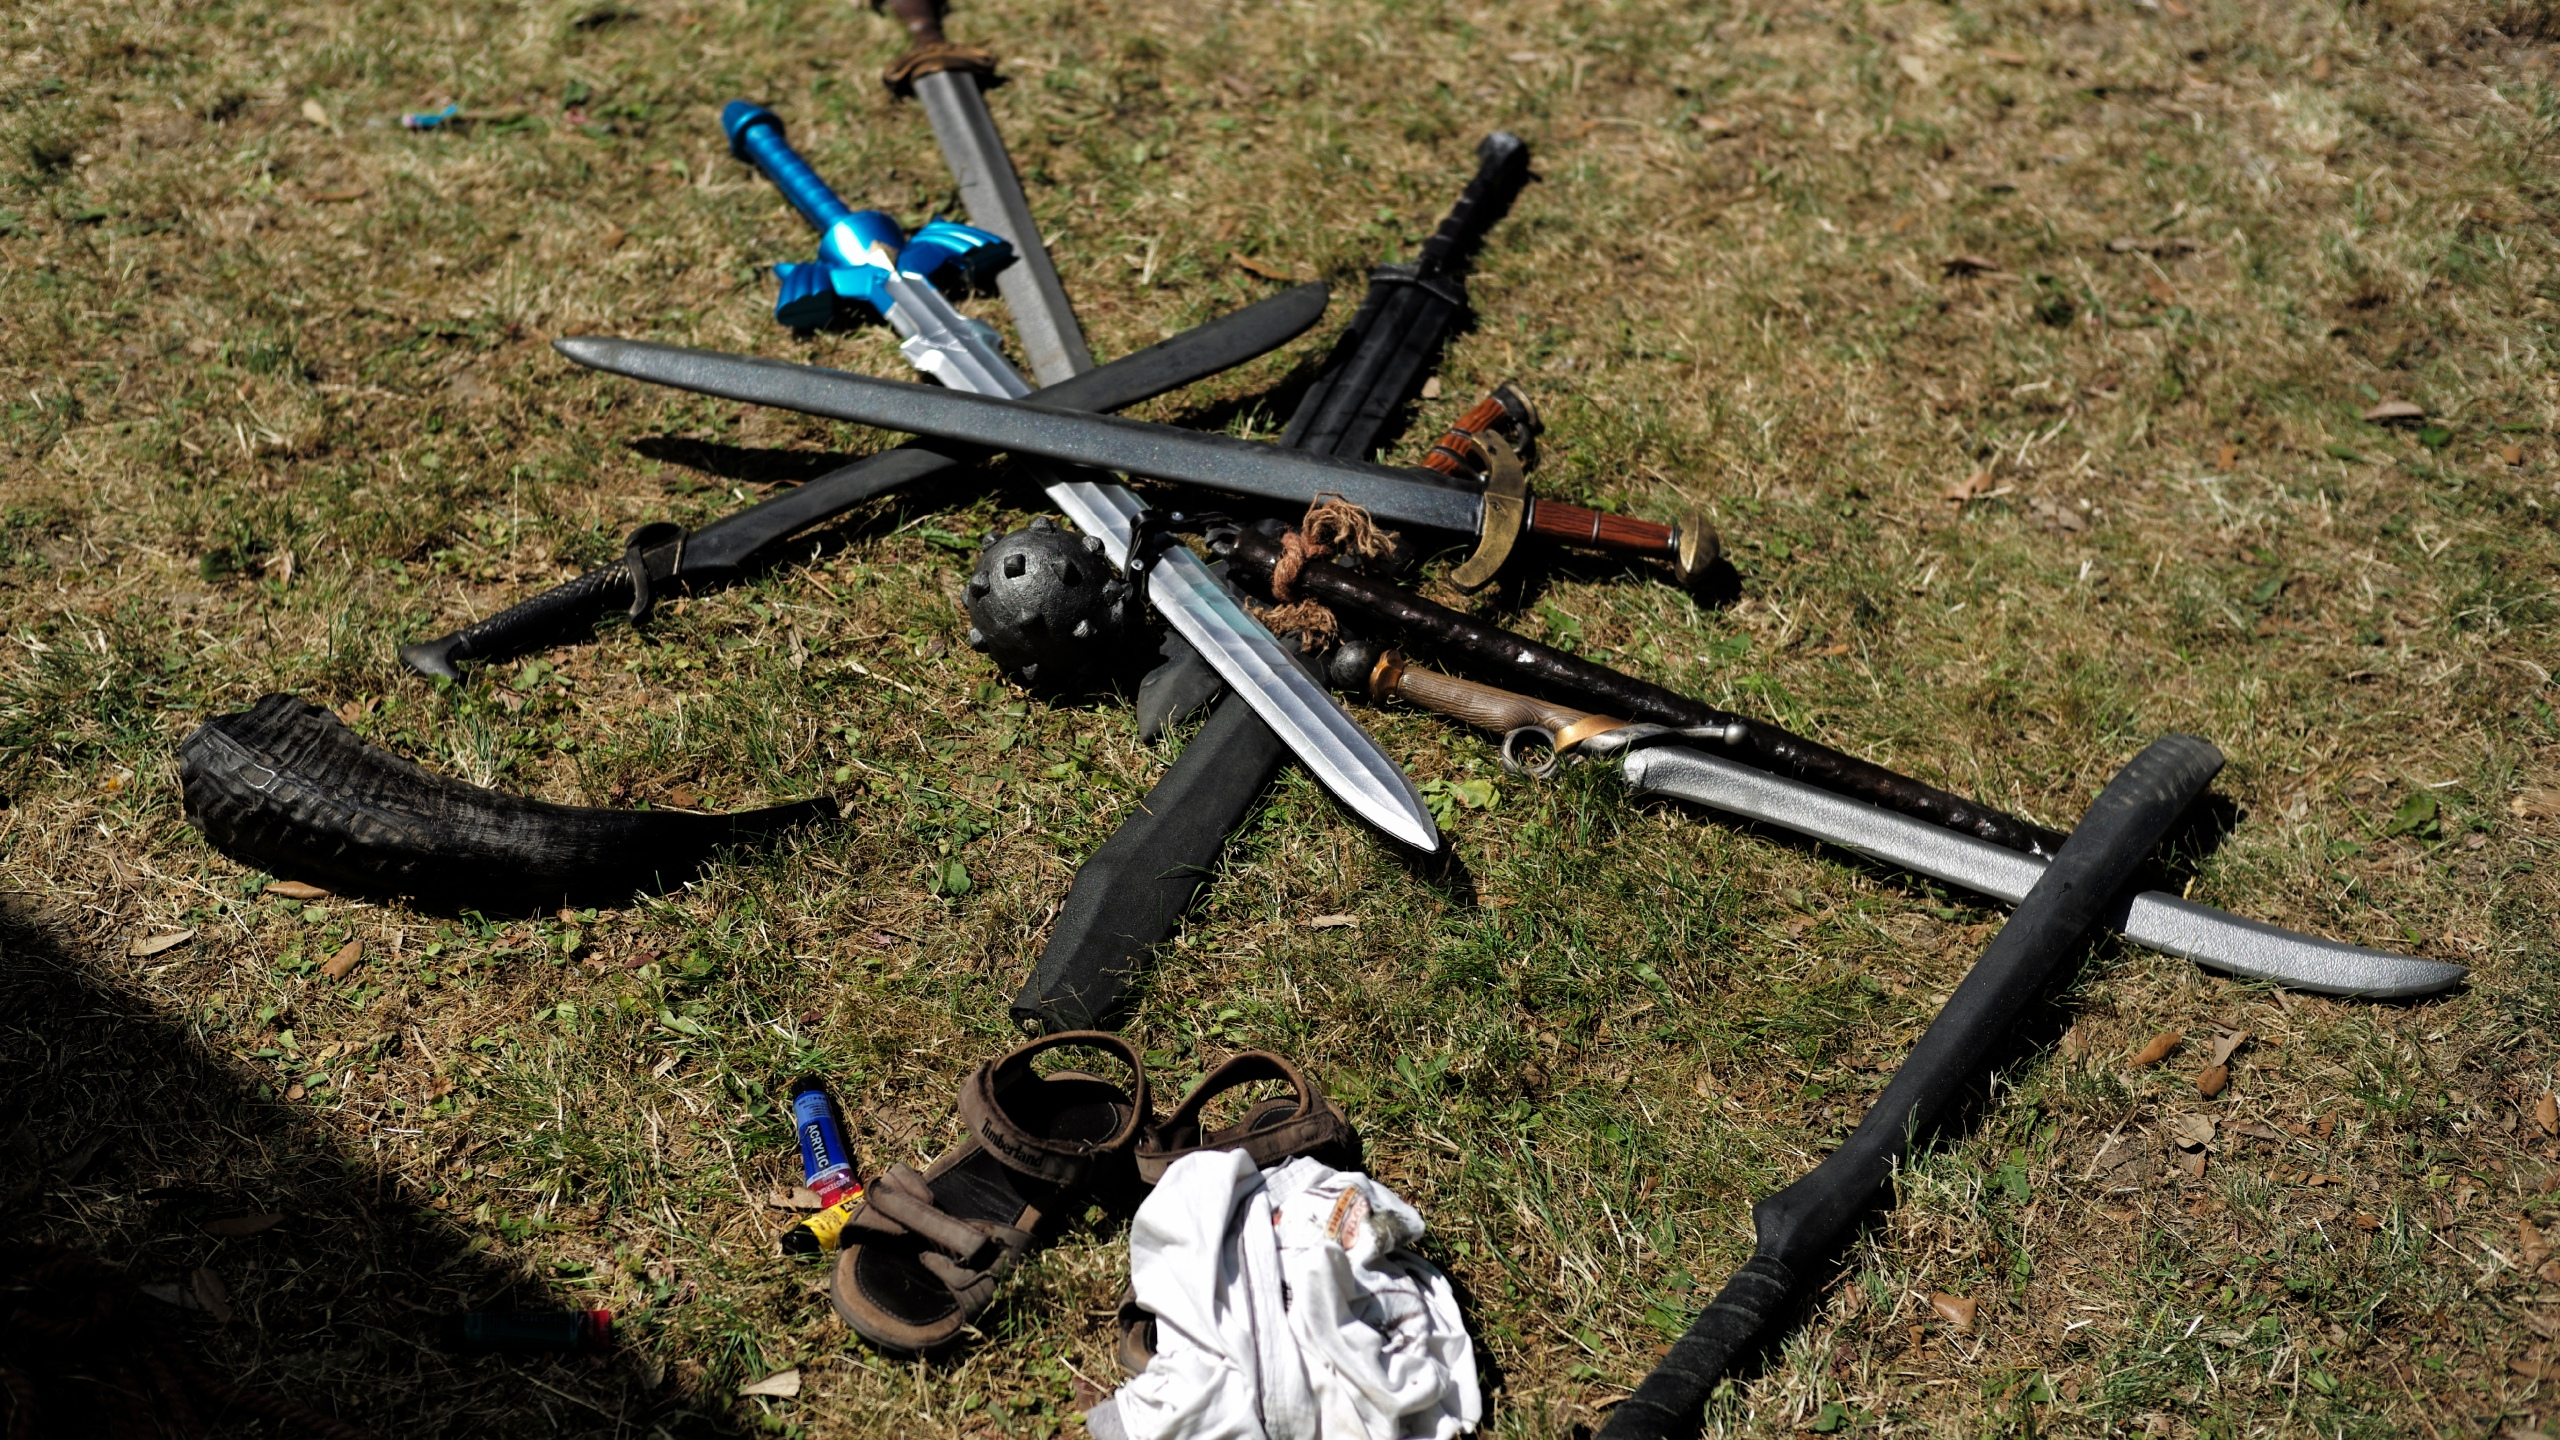 Fake sabers and swords are pictured at Japan Expo exhibition in Villepin, outside Paris, Thursday, July 4, 2019. The event, which runs from July 4 to 7 is devoted to Japanese culture and entertainment. (AP Photo/Kamil Zihnioglu)